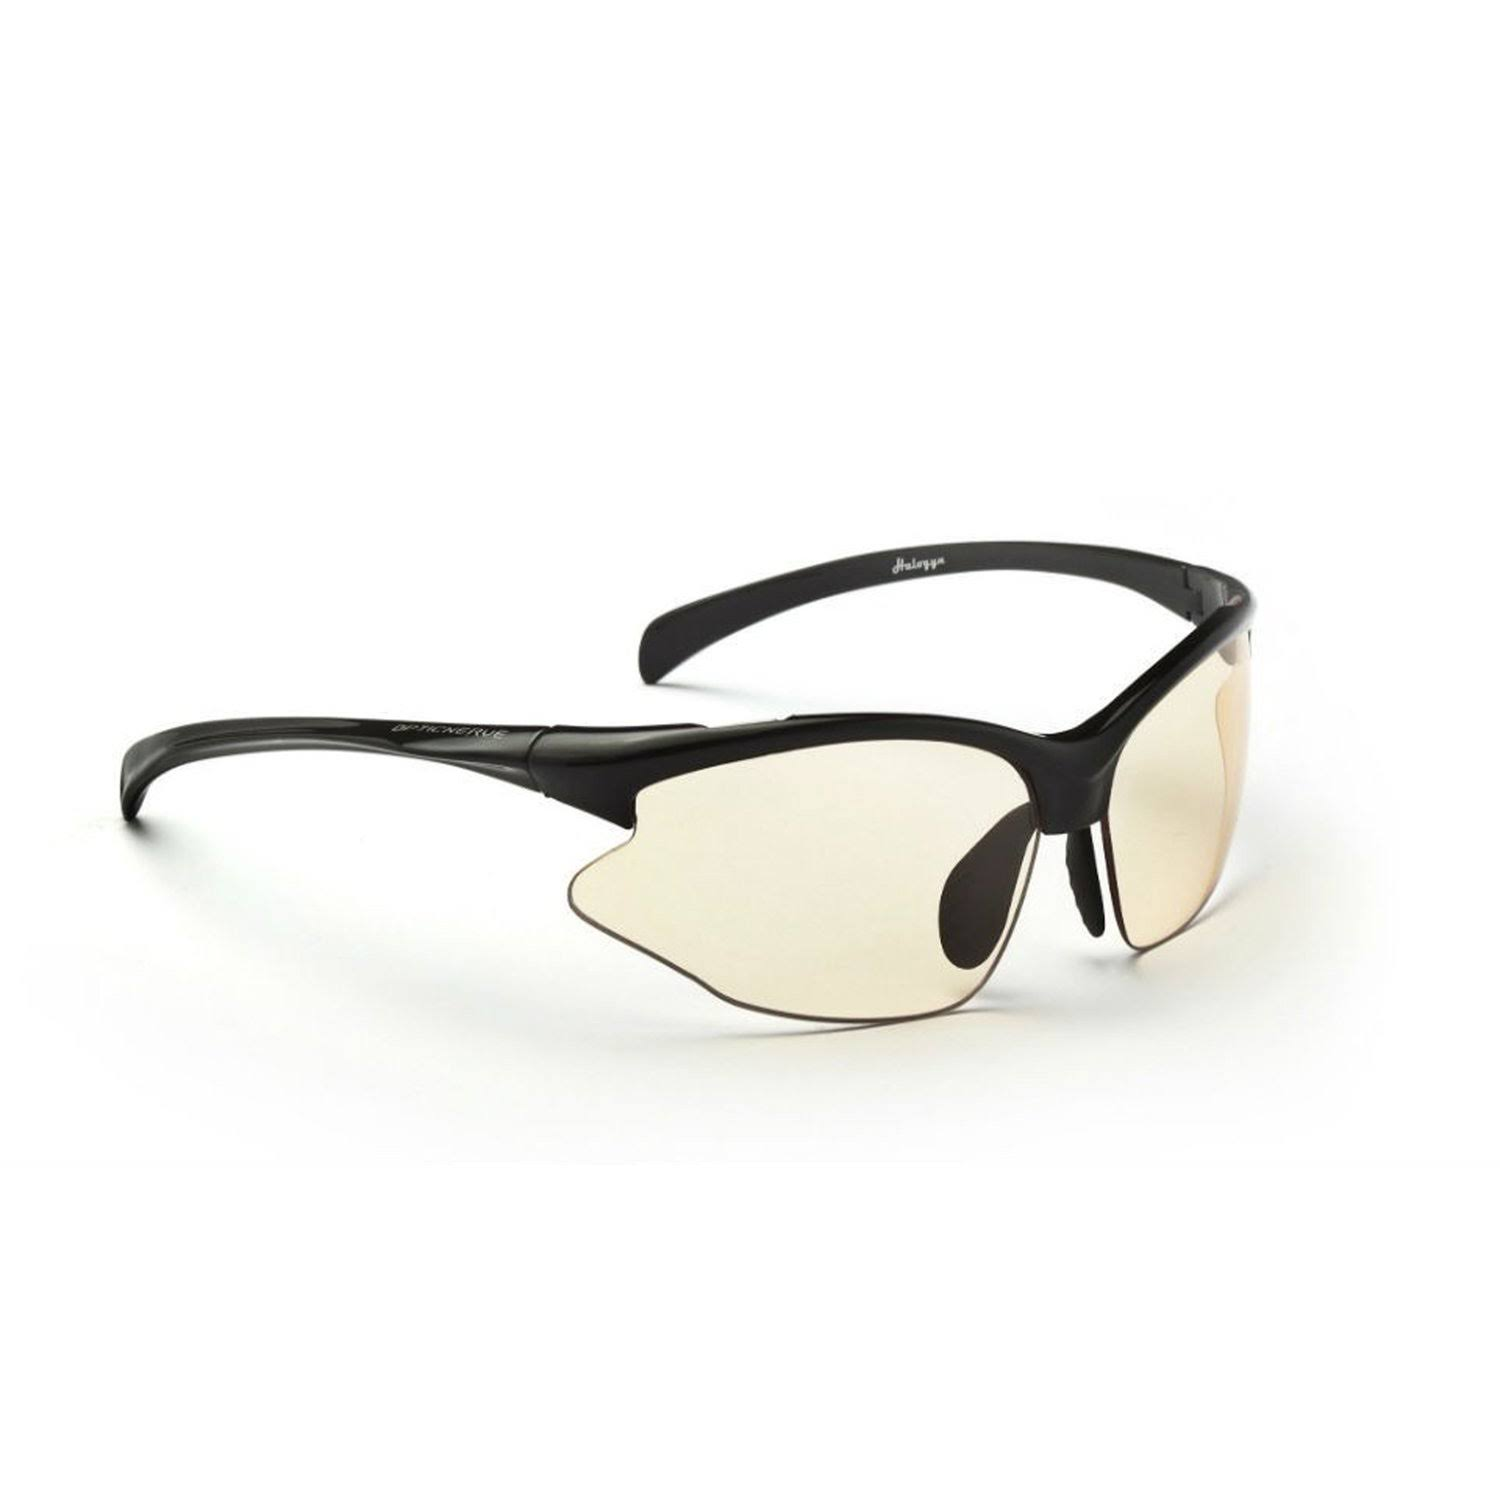 Optic Nerve Omnium PM Sunglasses - Shiny Black, Photomatic, Brown to Brown